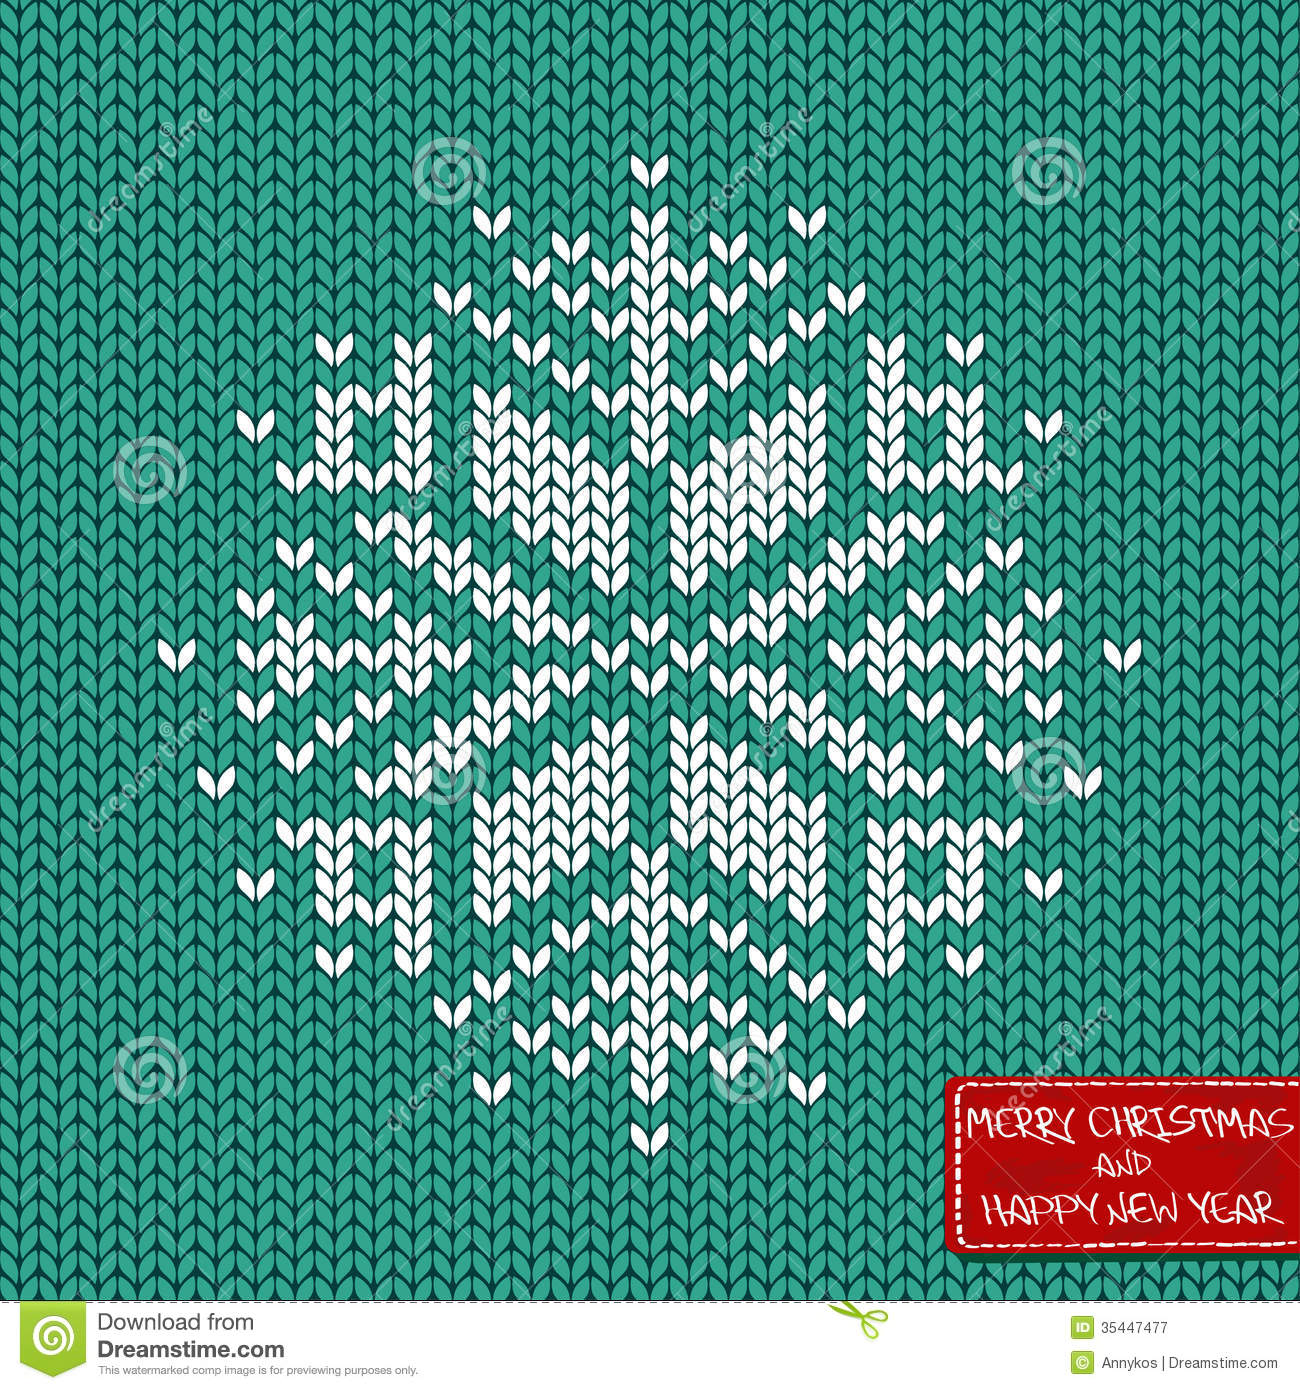 Knit Snowflake Pattern : Christmas And New Year Knitted Seamless Pattern Or Card Royalty Free Stock Ph...